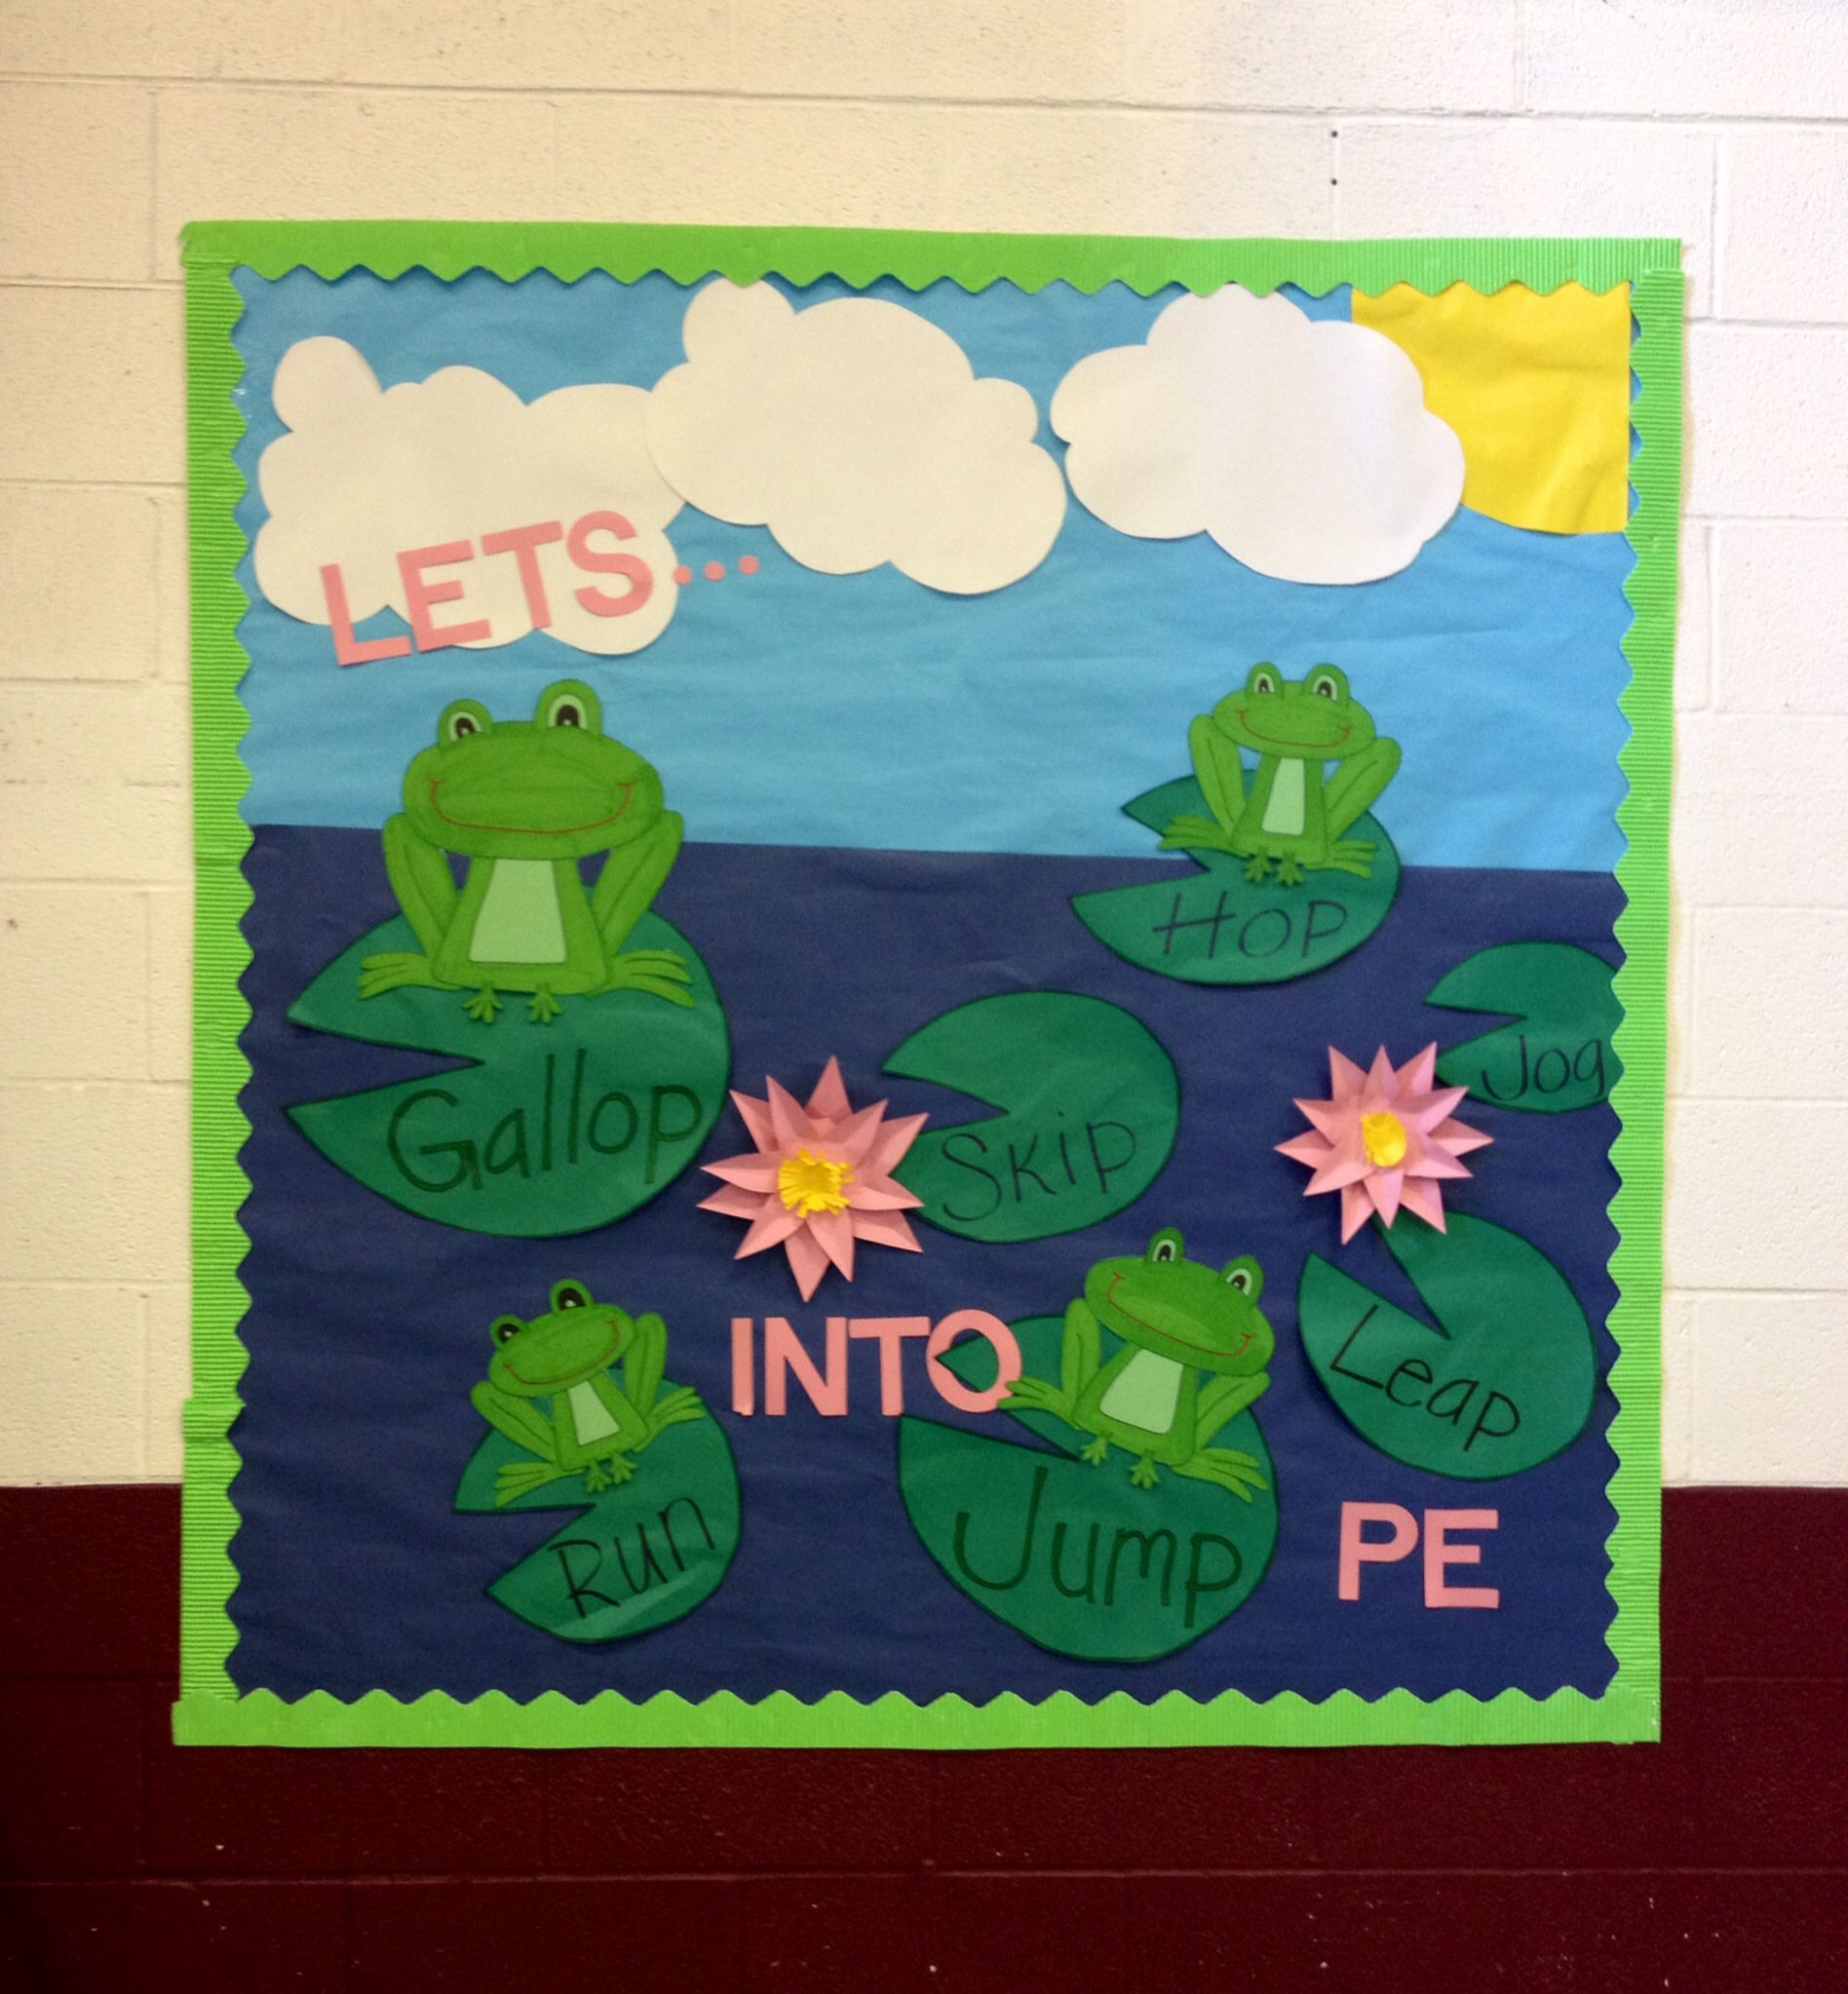 Bulletin Board Ideas With Frogs: Frogs Lilly Pads Pond Hop Skip